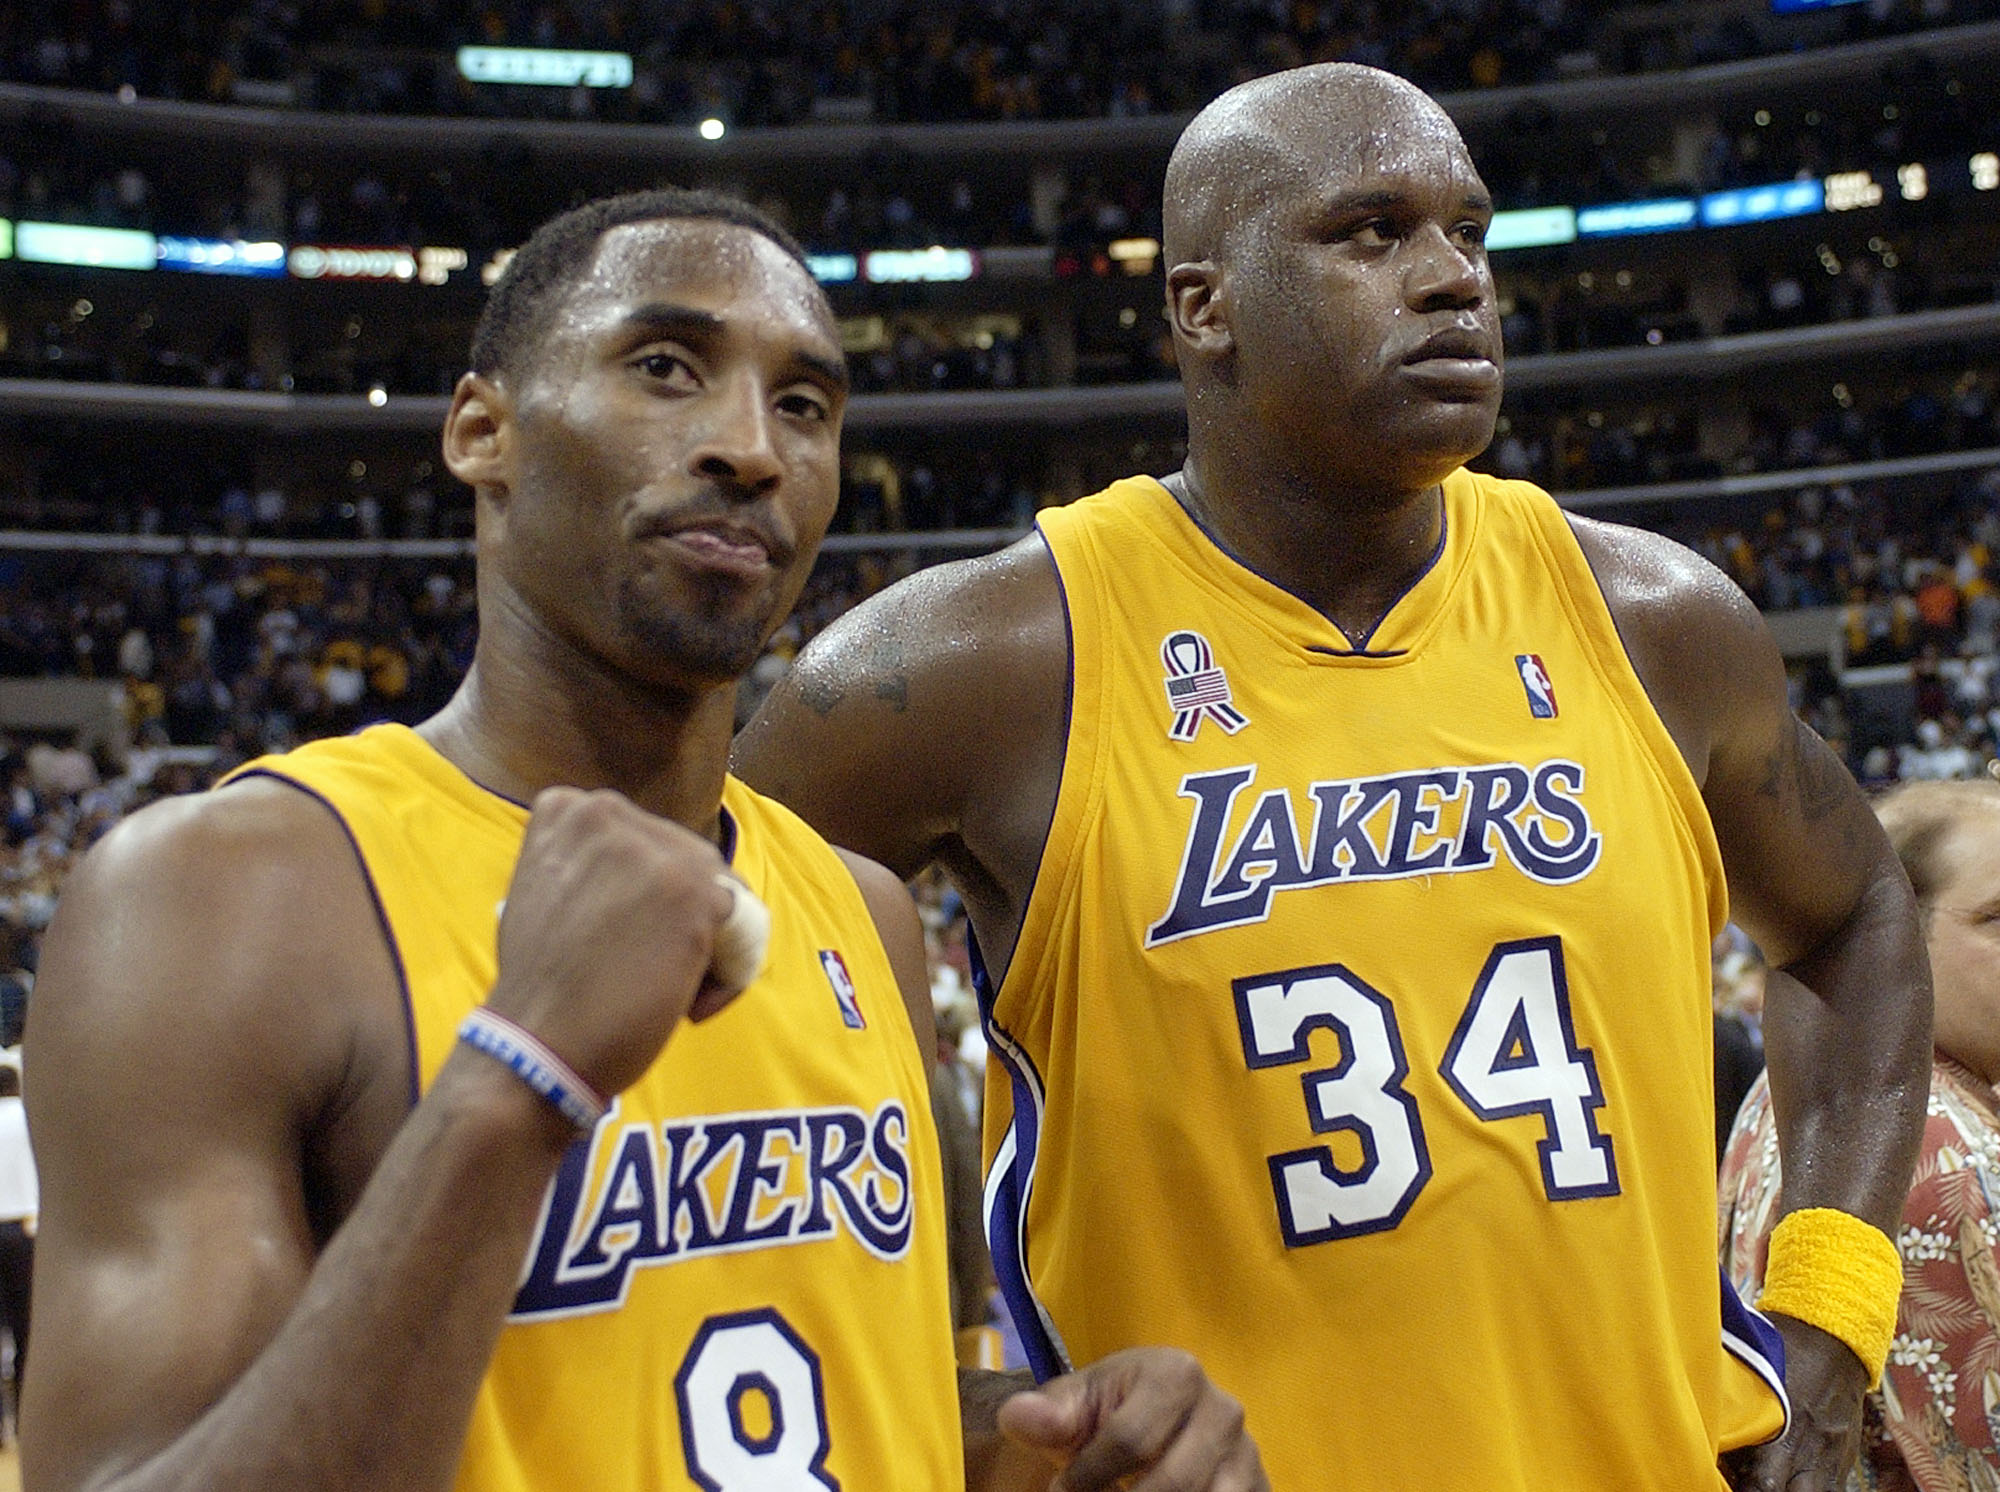 Lakers Legend Kobe Bryant's NBA Career Comes to a Close ...